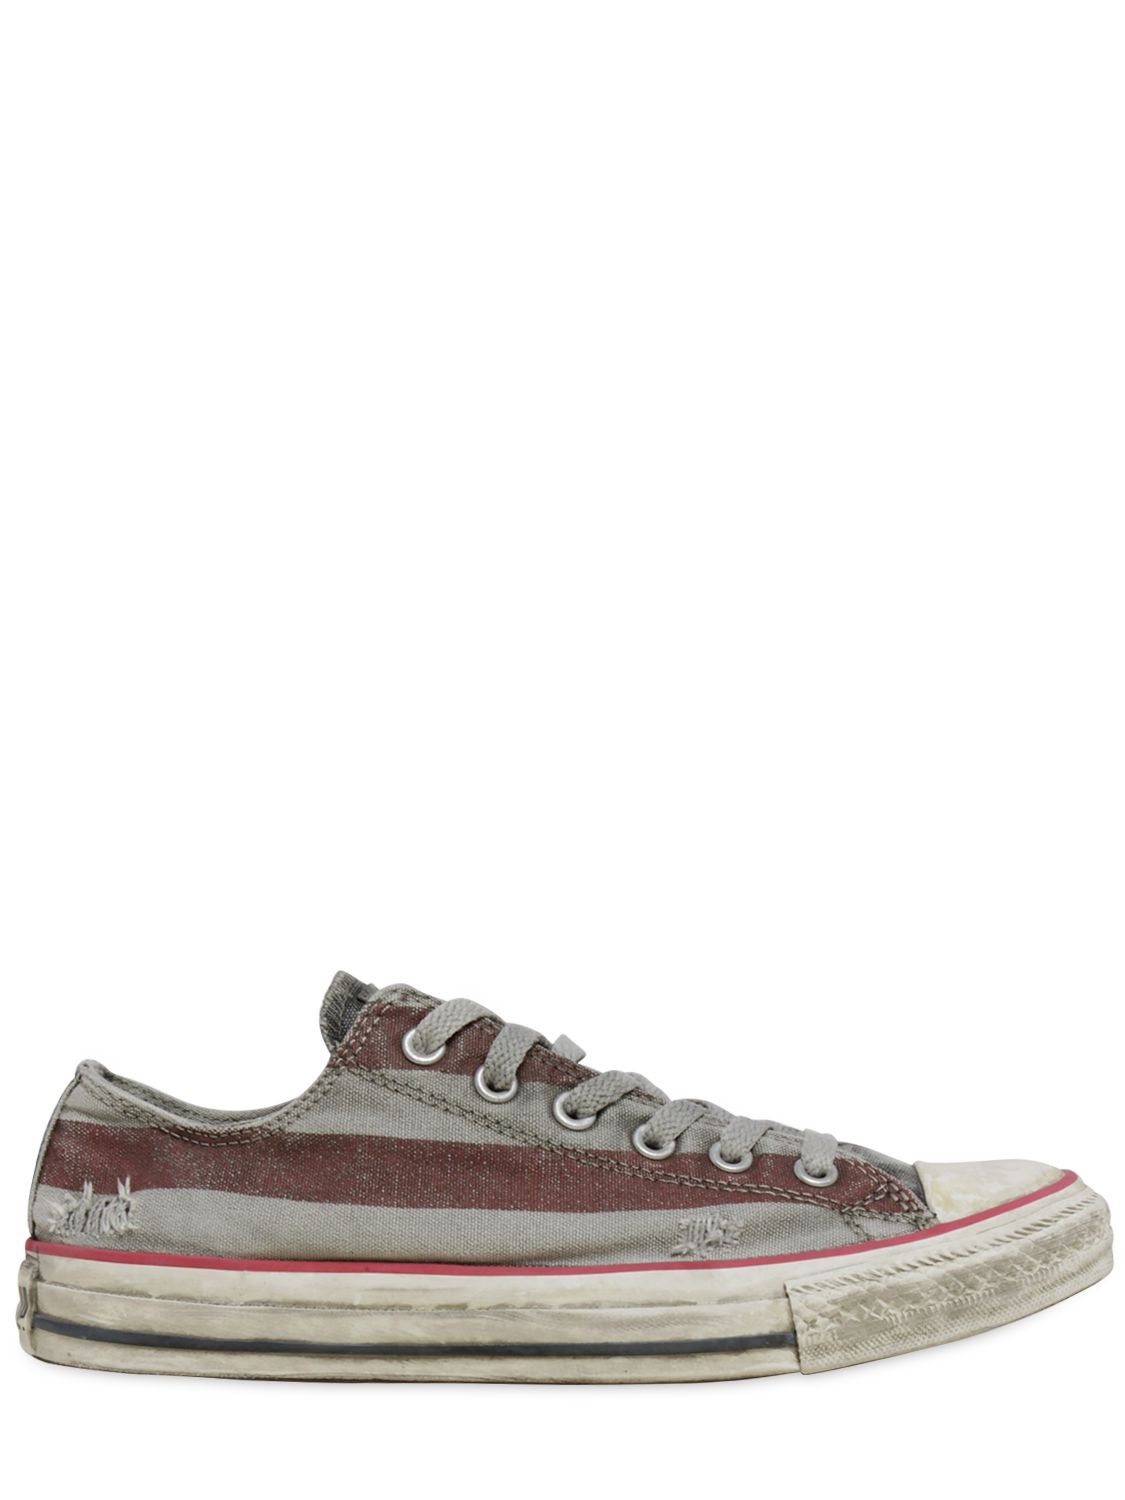 converse limited edition distressed low sneakers in gray. Black Bedroom Furniture Sets. Home Design Ideas